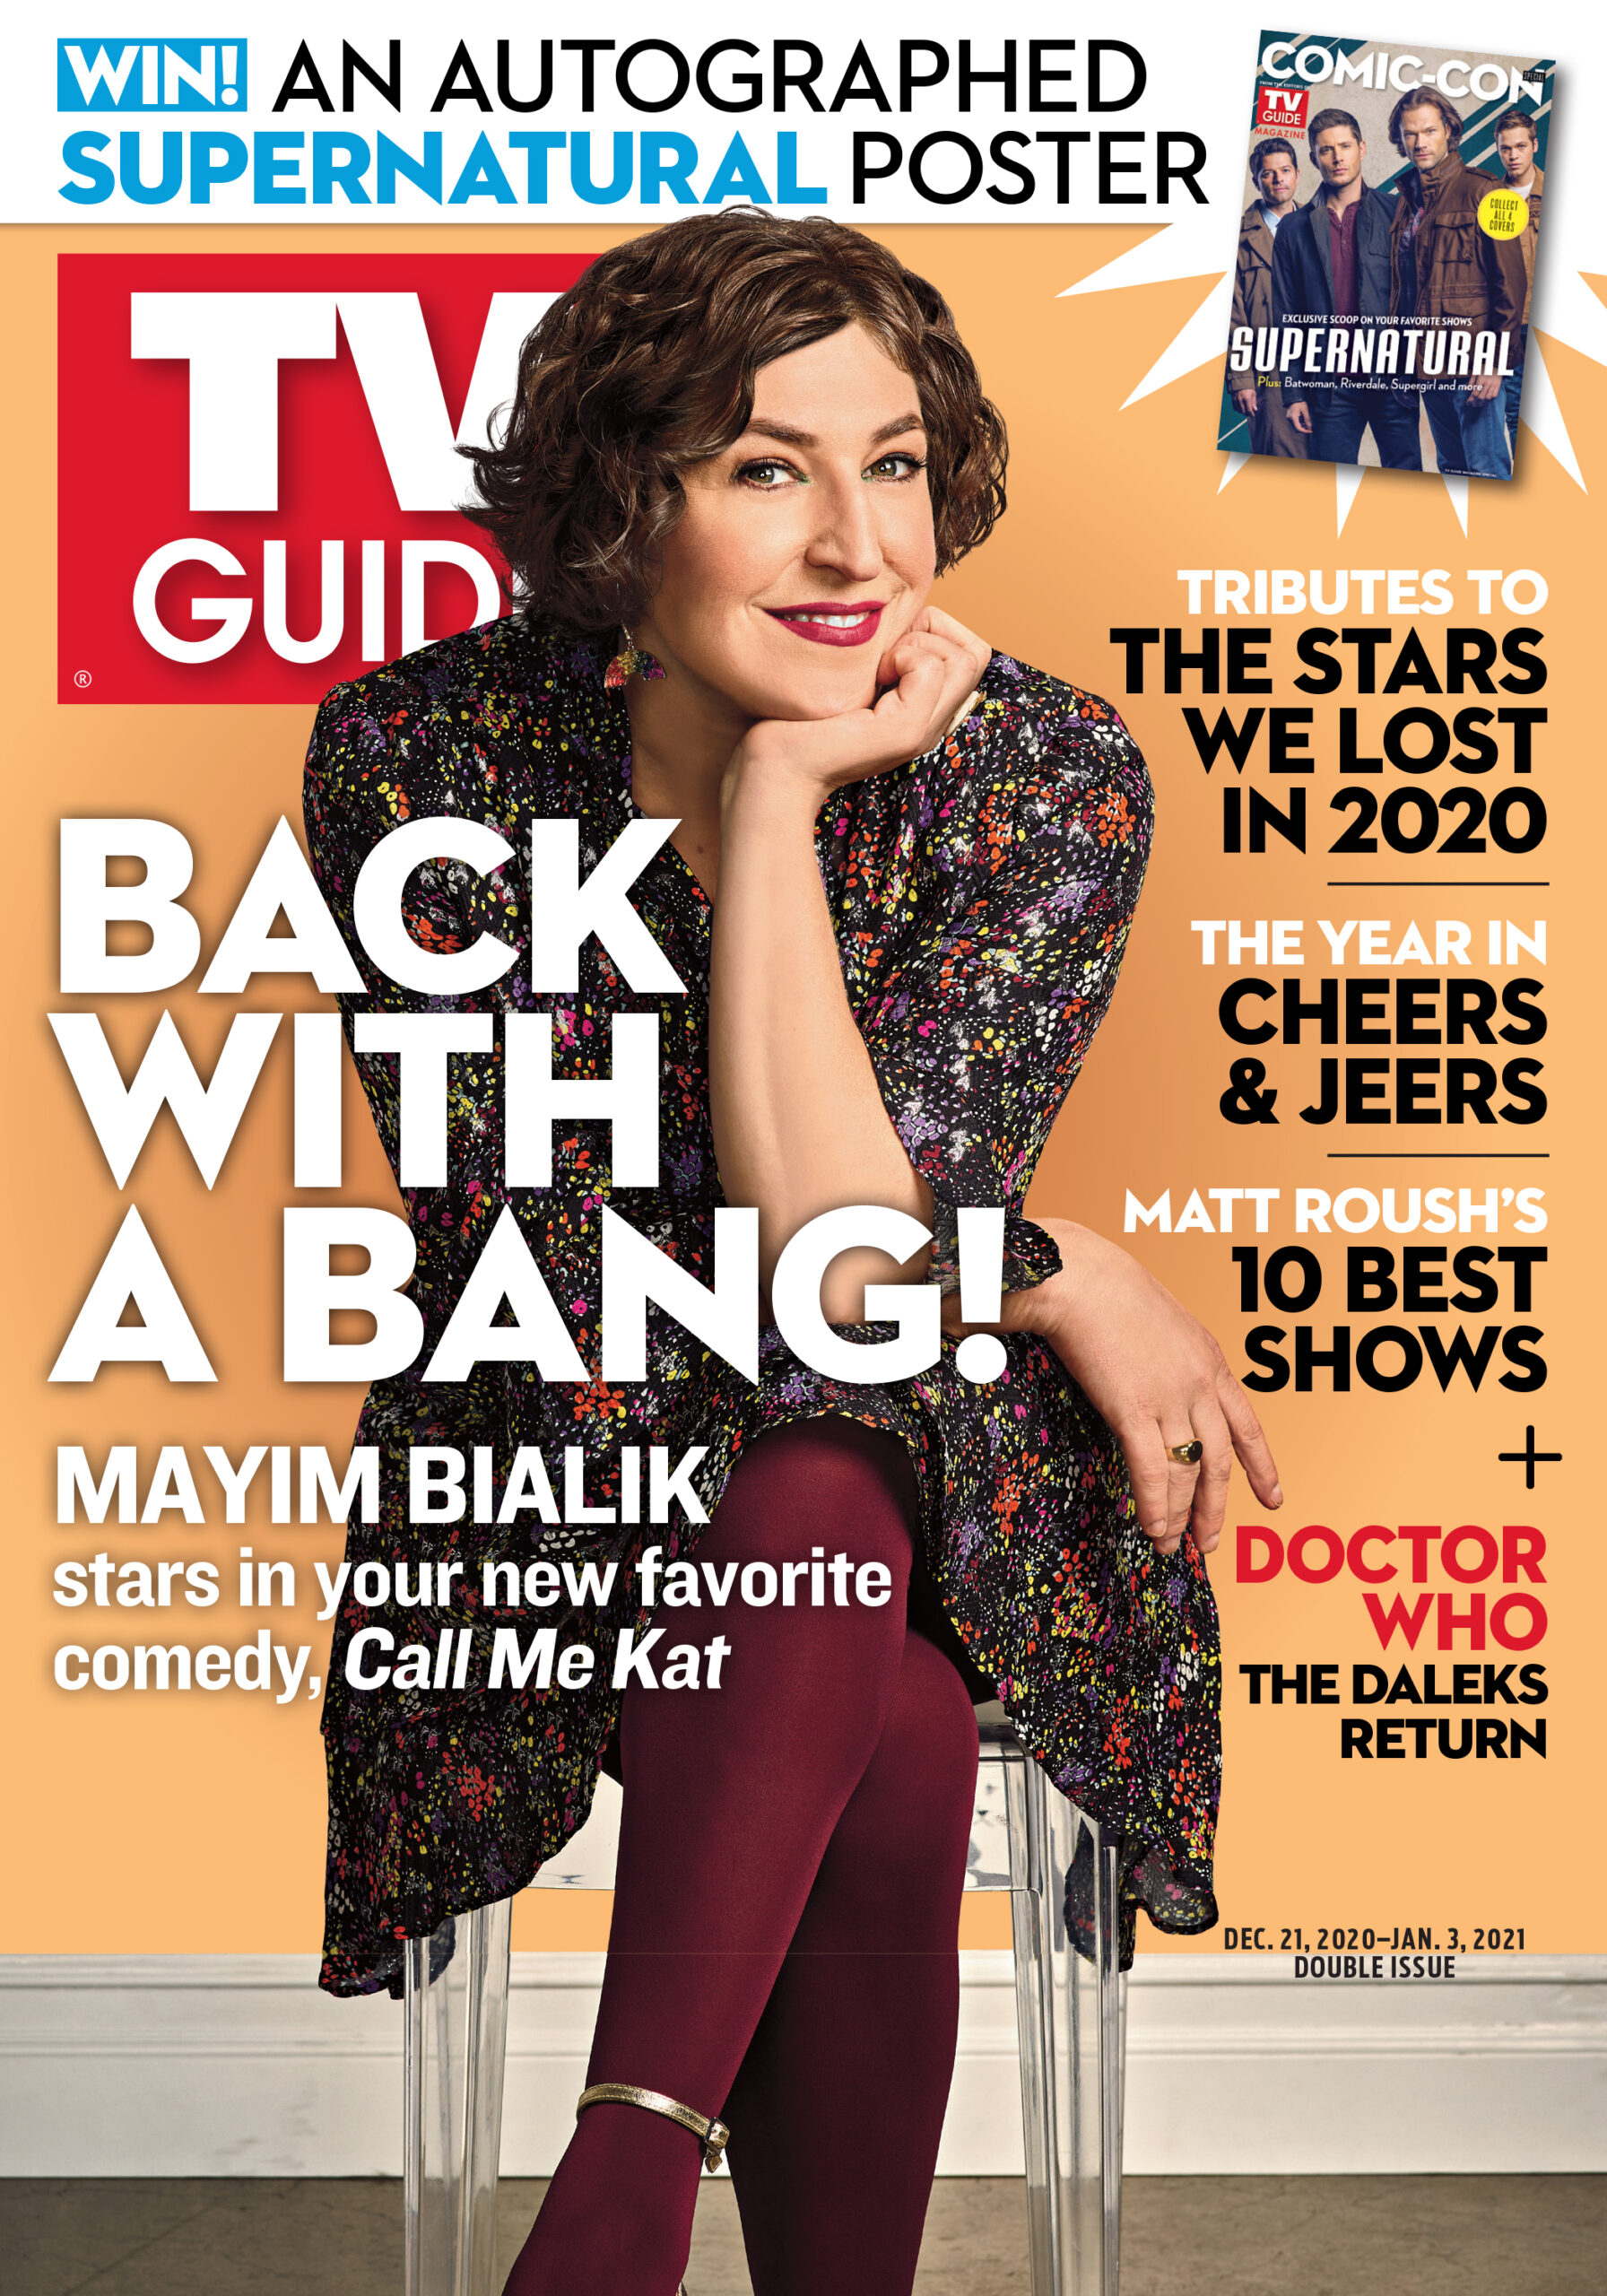 TV Guide - Call Me Kat Cover - December 21, 2020